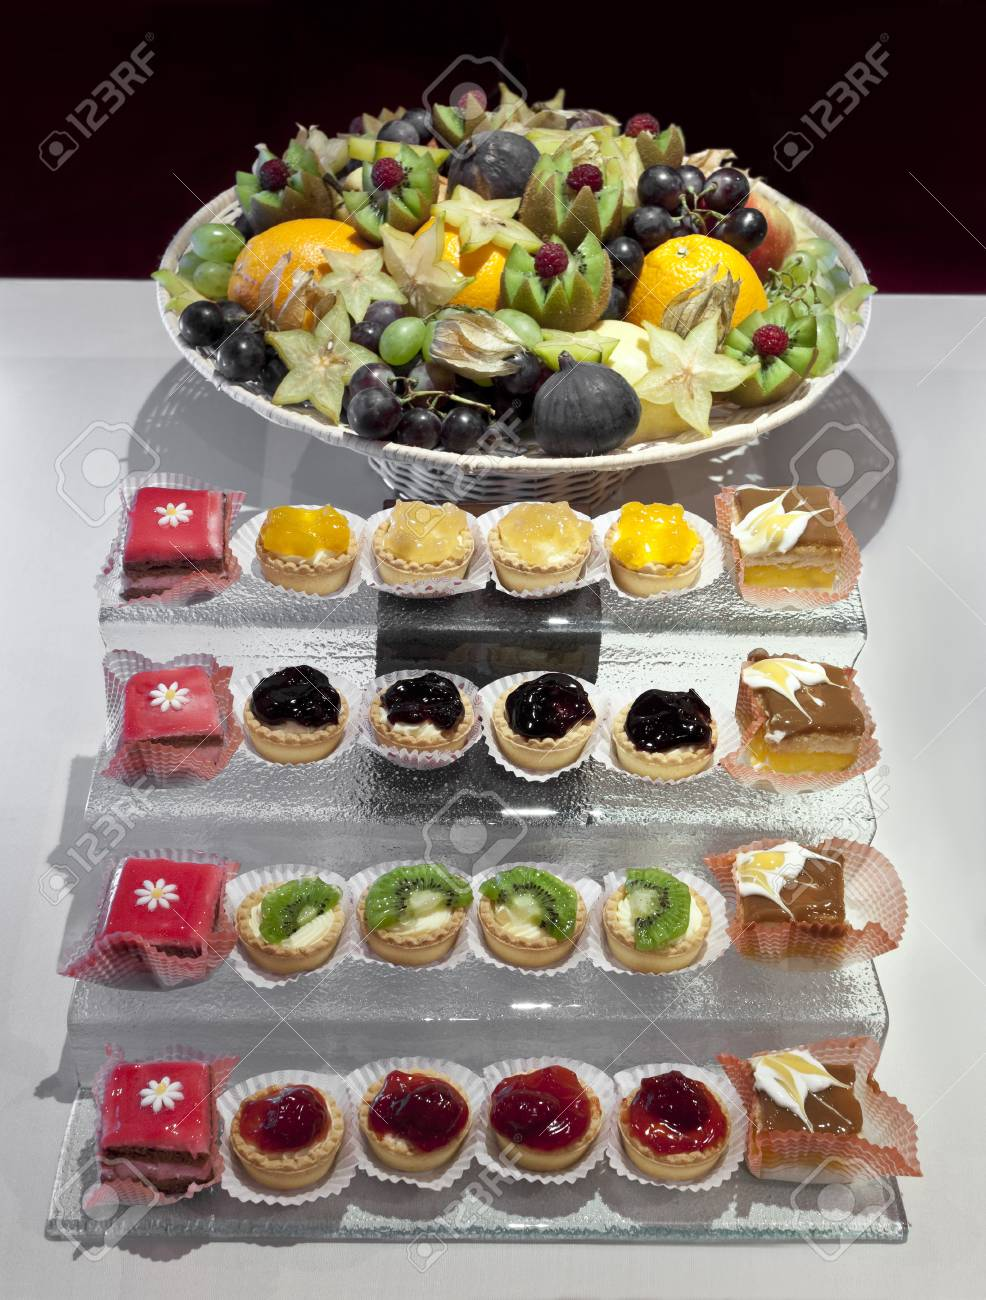 Catering Platters Of Small Pastries And Fruit Bowl Stock Photo Picture And Royalty Free Image Image 31125357